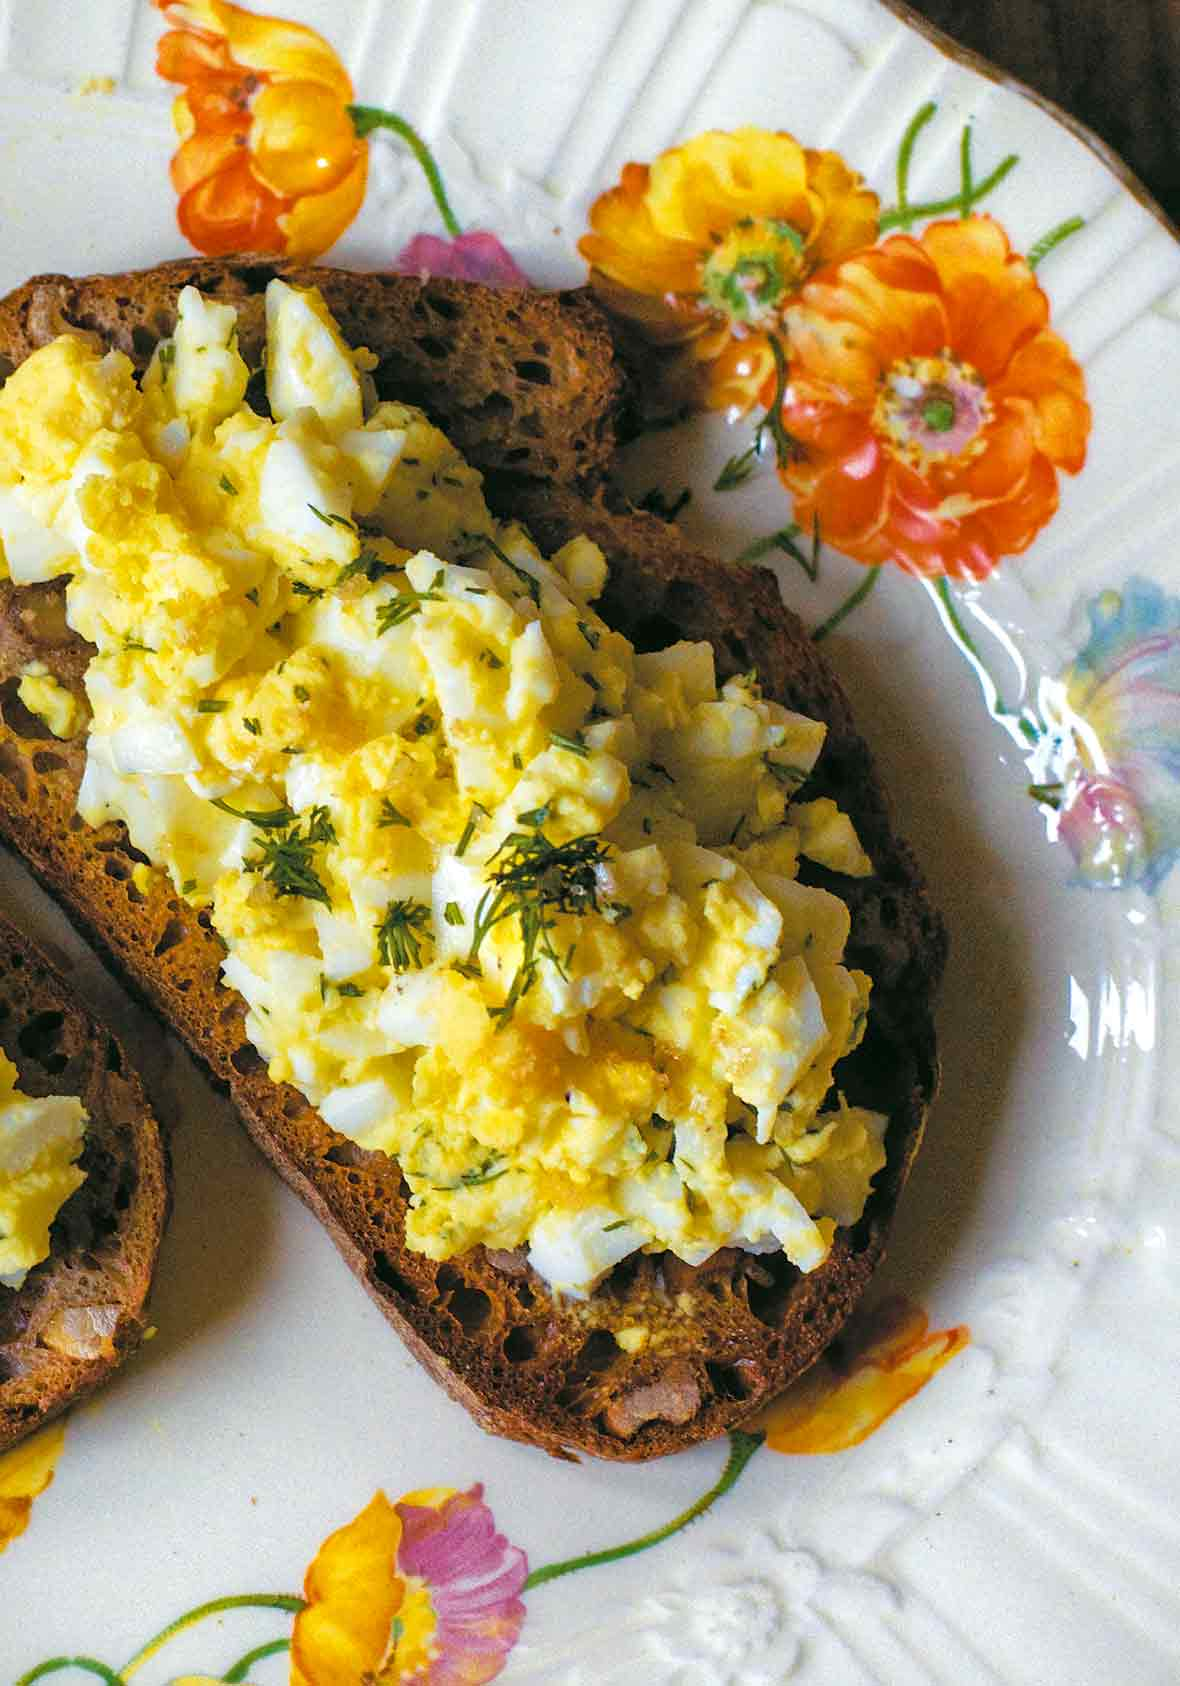 An open face egg salad sandwich on toasted whole wheat